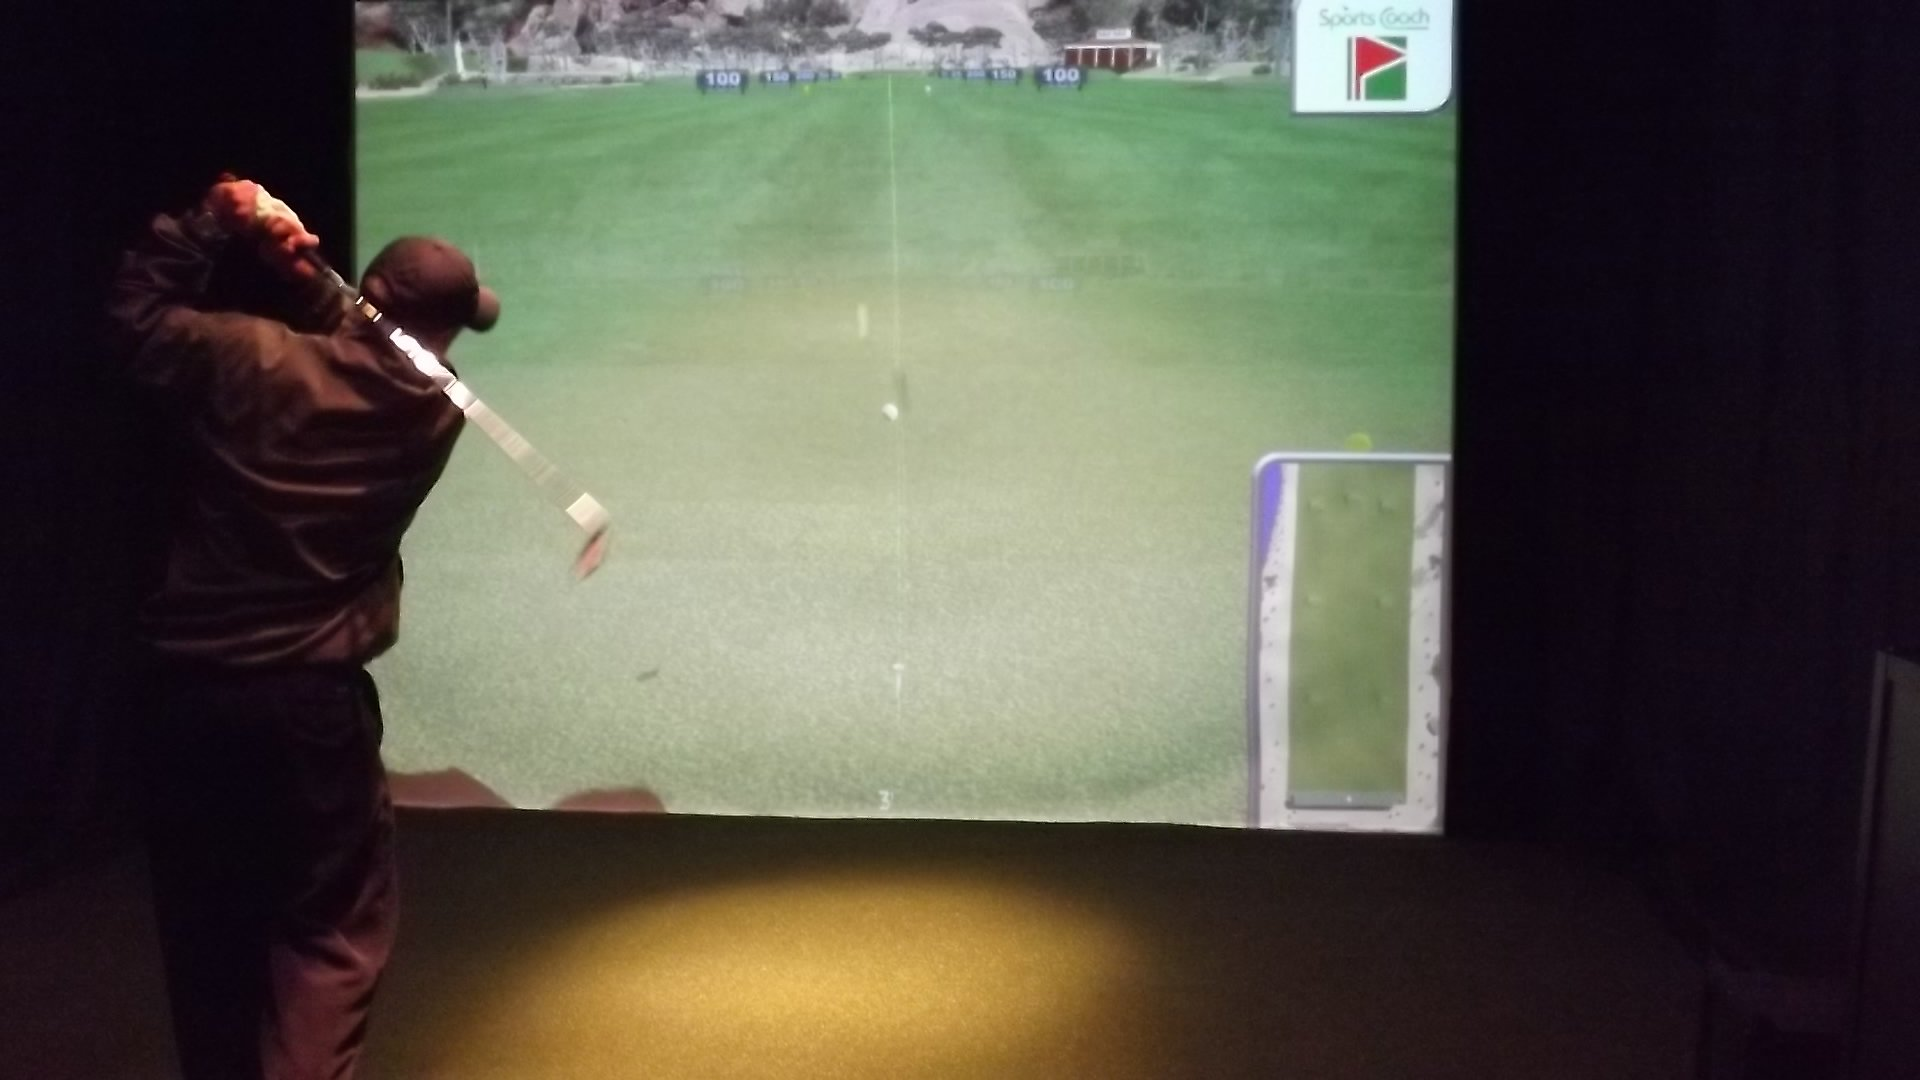 Virtual Golf at Burden Lake Country Club